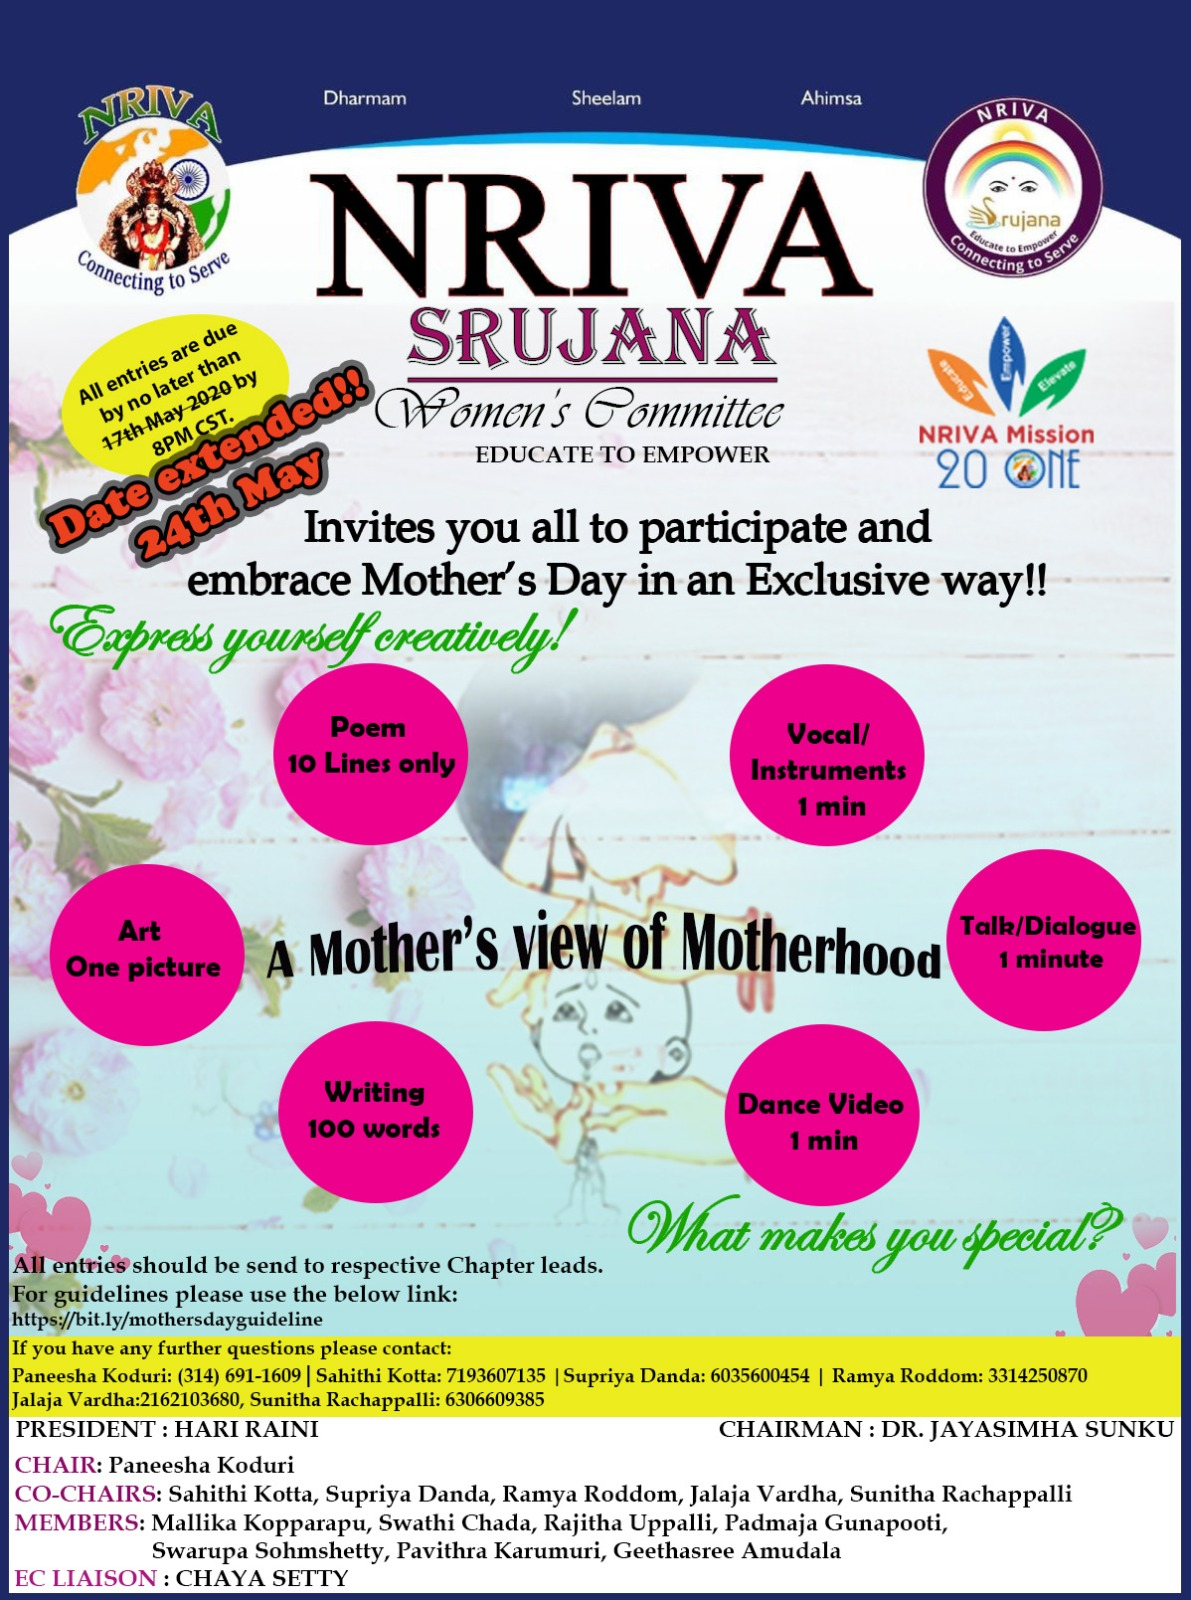 Srujana - Mothers Day -Express Yourself - Send your Item to Your Chapter Lead